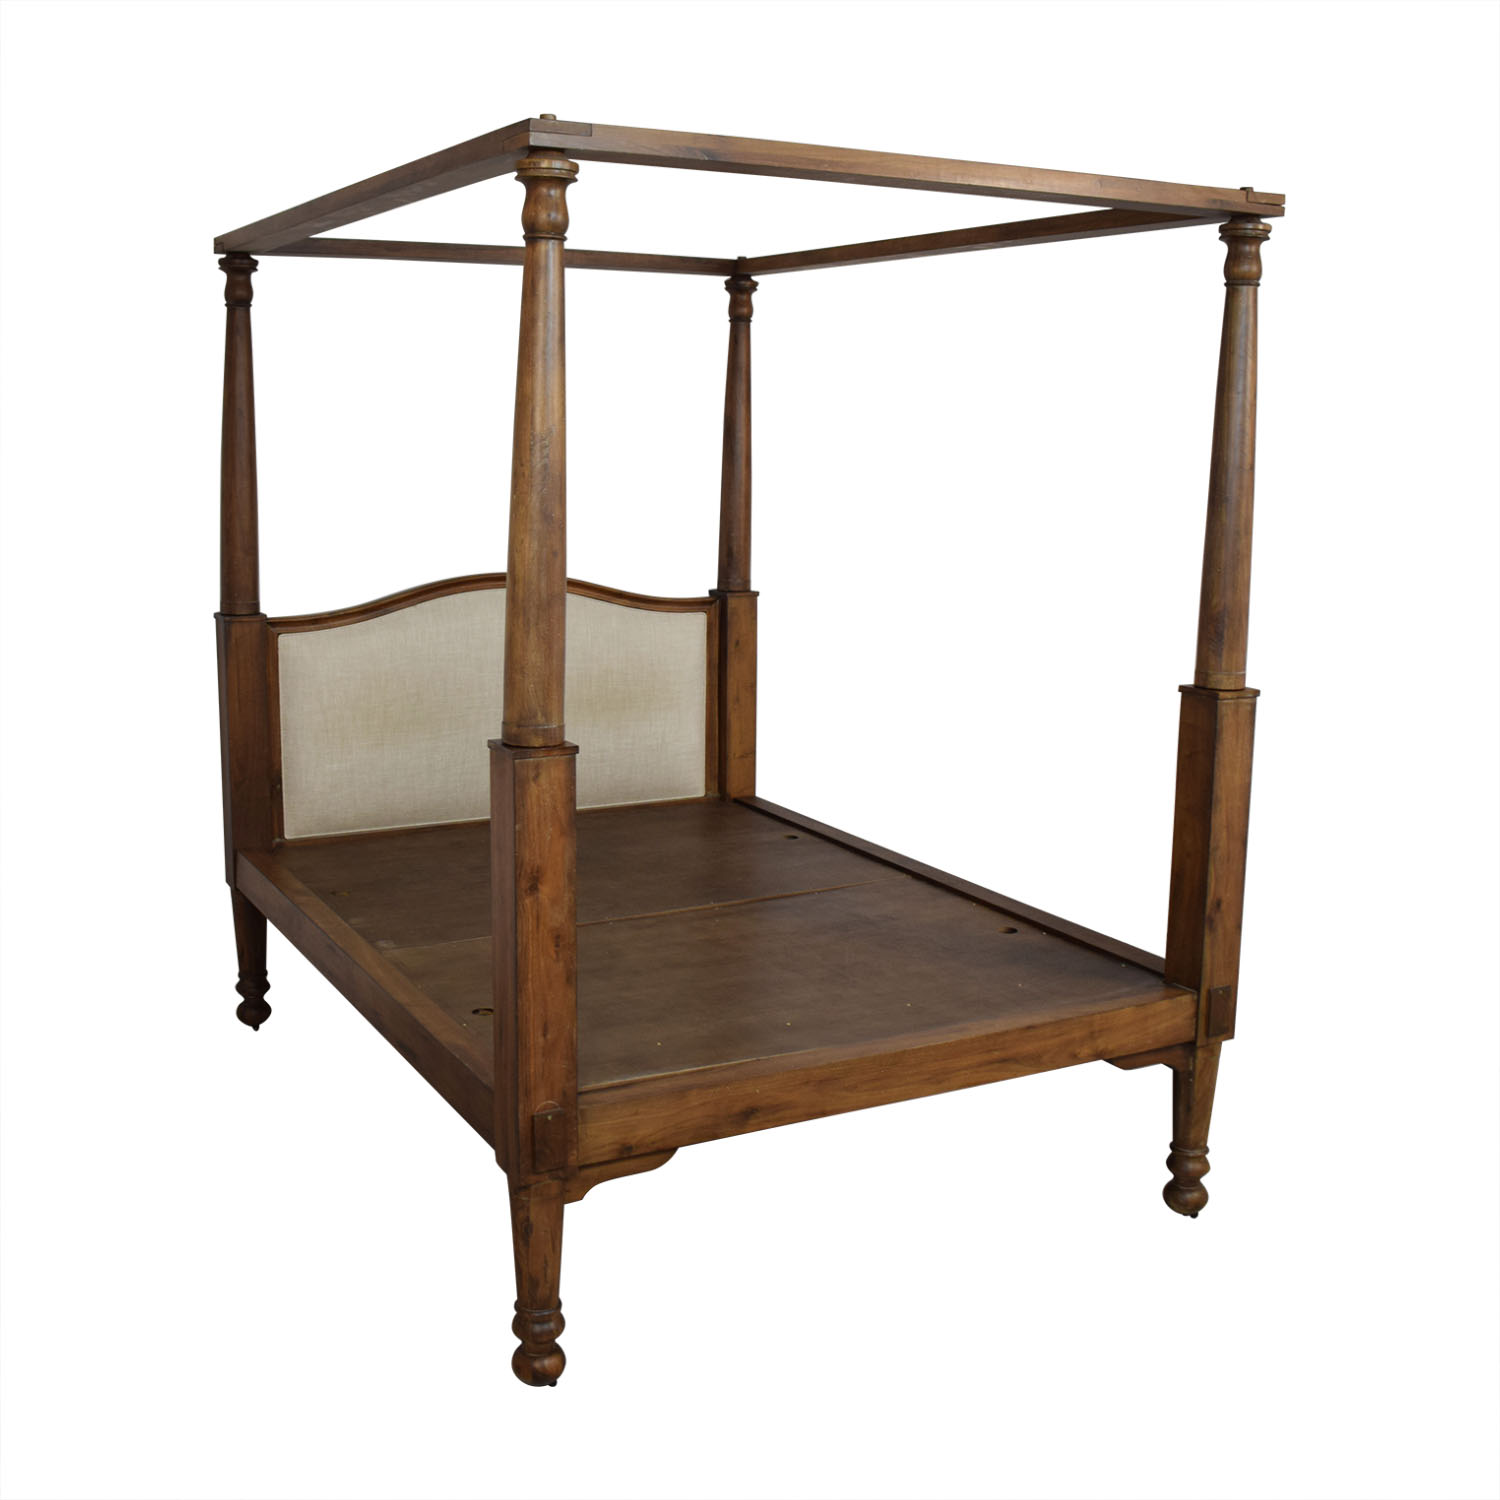 buy Restoration Hardware Early 19th C. American 4-Poster Queen Bed Restoration Hardware Beds